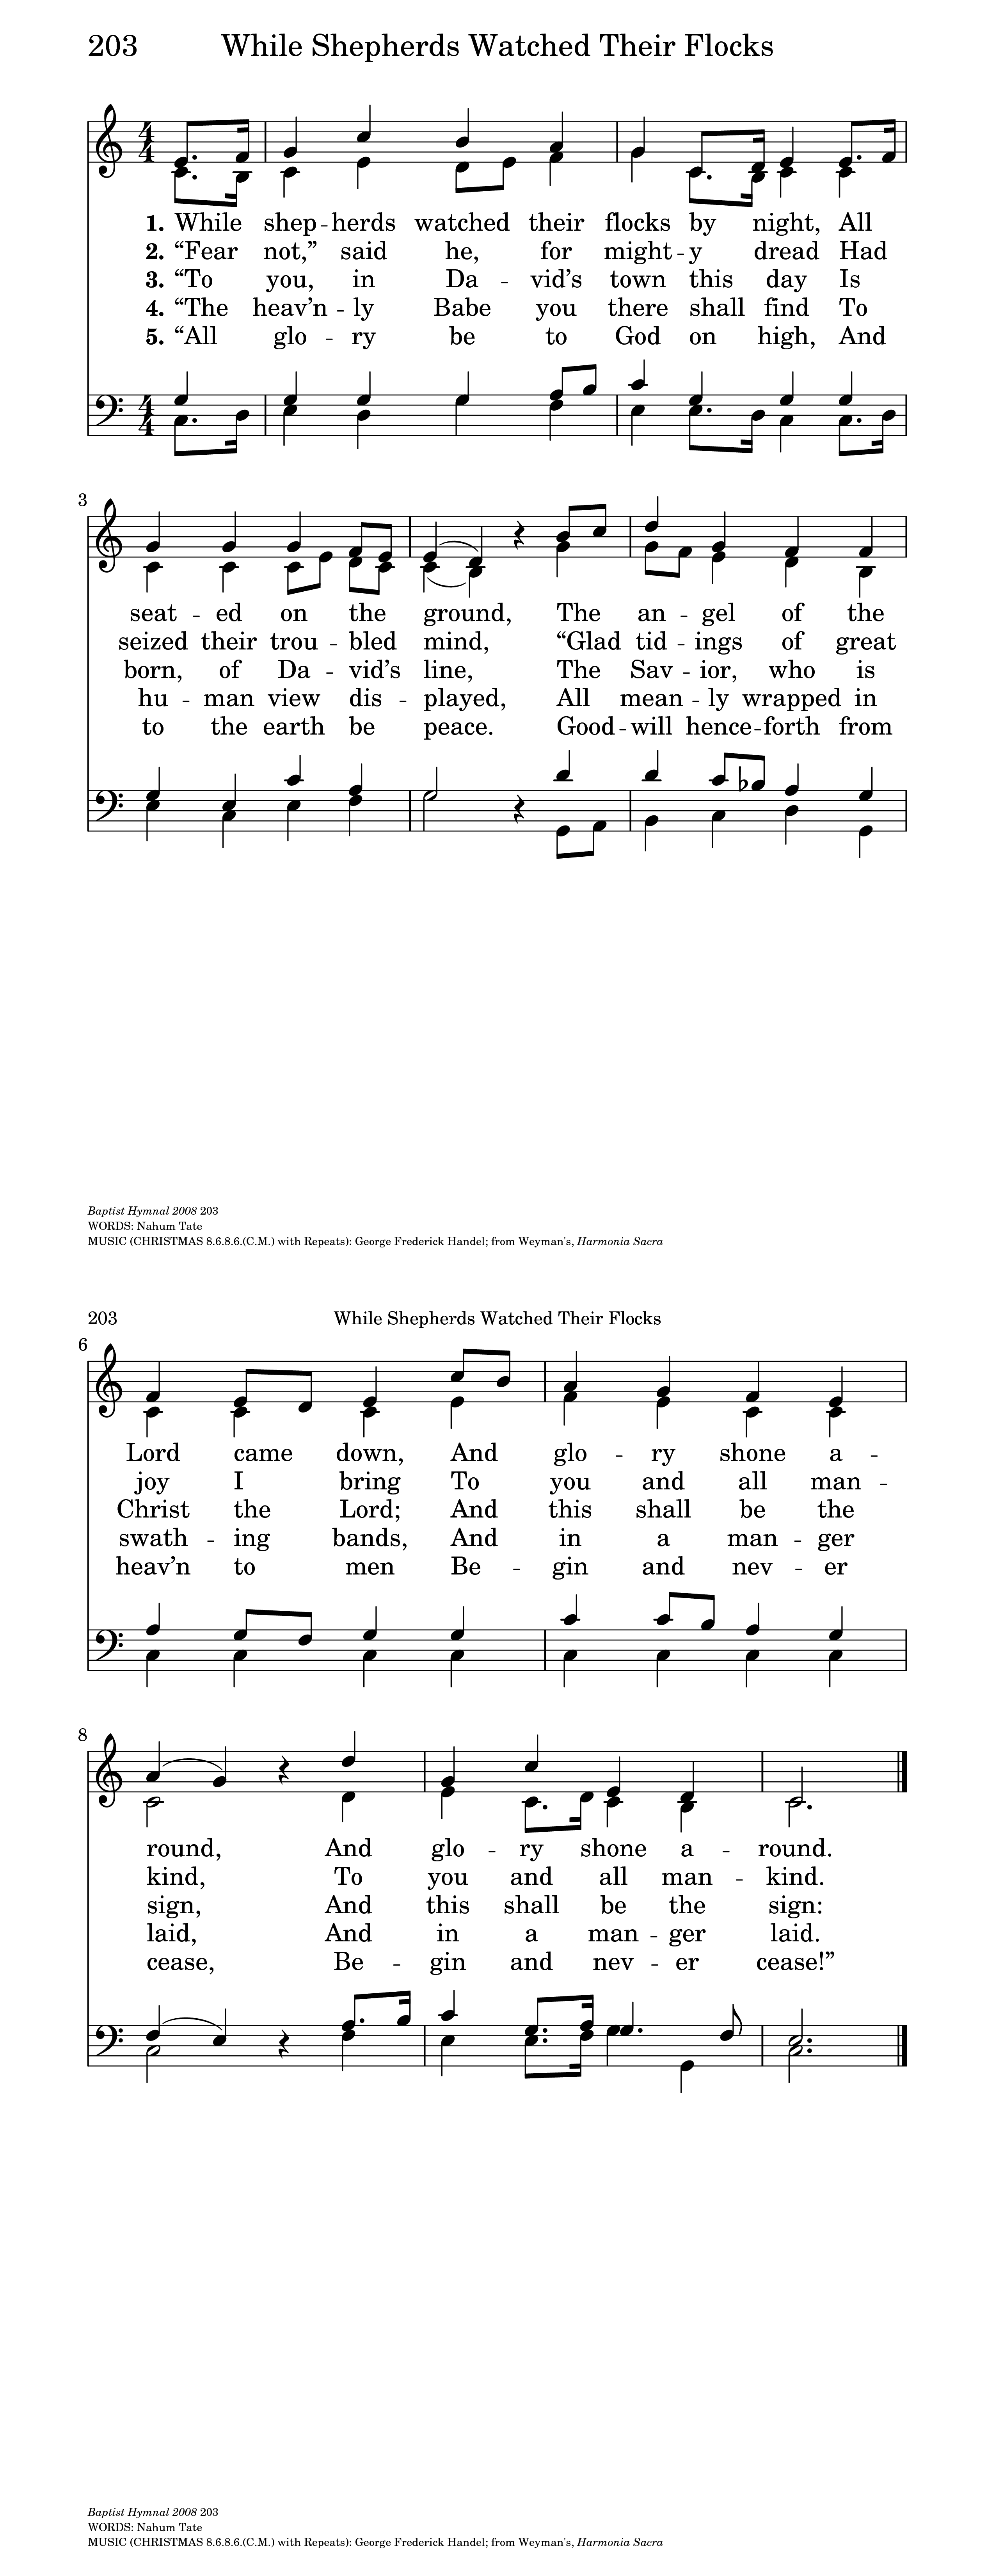 While shepherds watched their flocks | Hymnary org